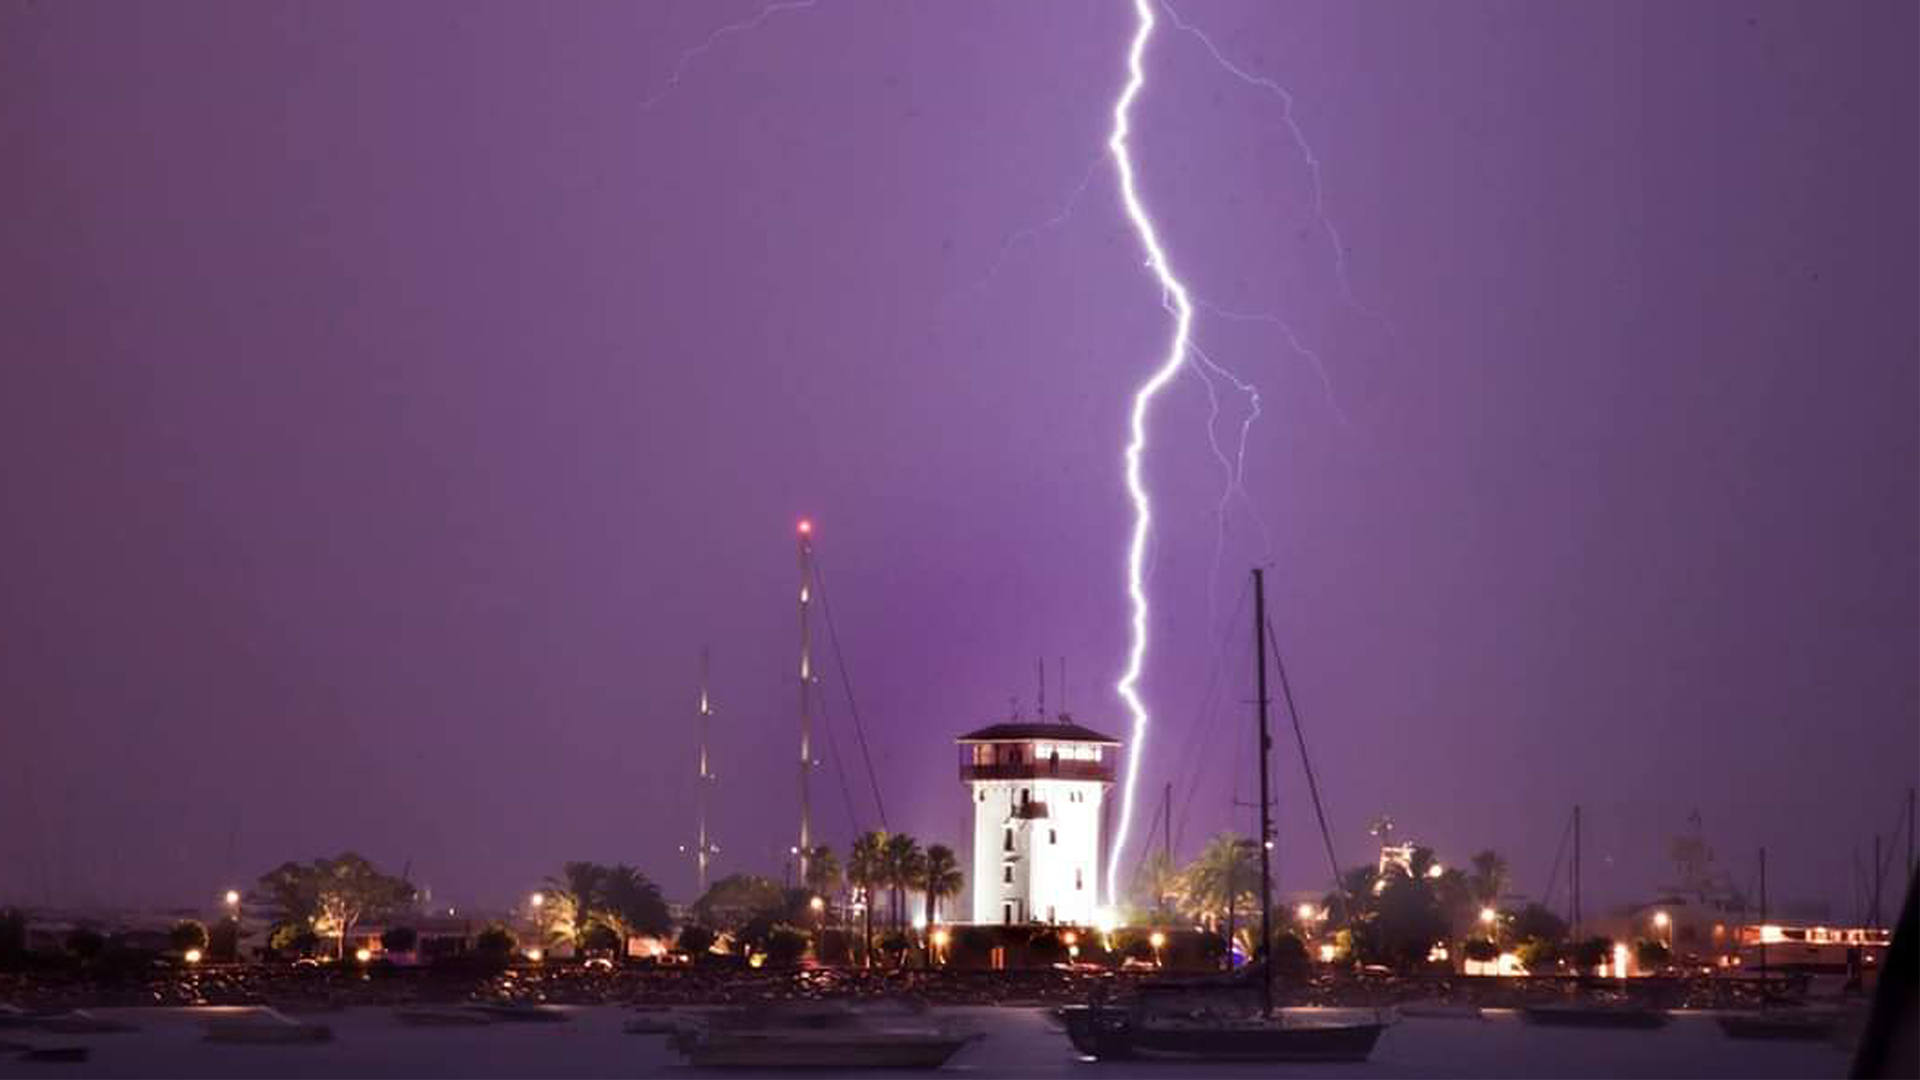 Storm portixol mallorca picture by Shrab Singh